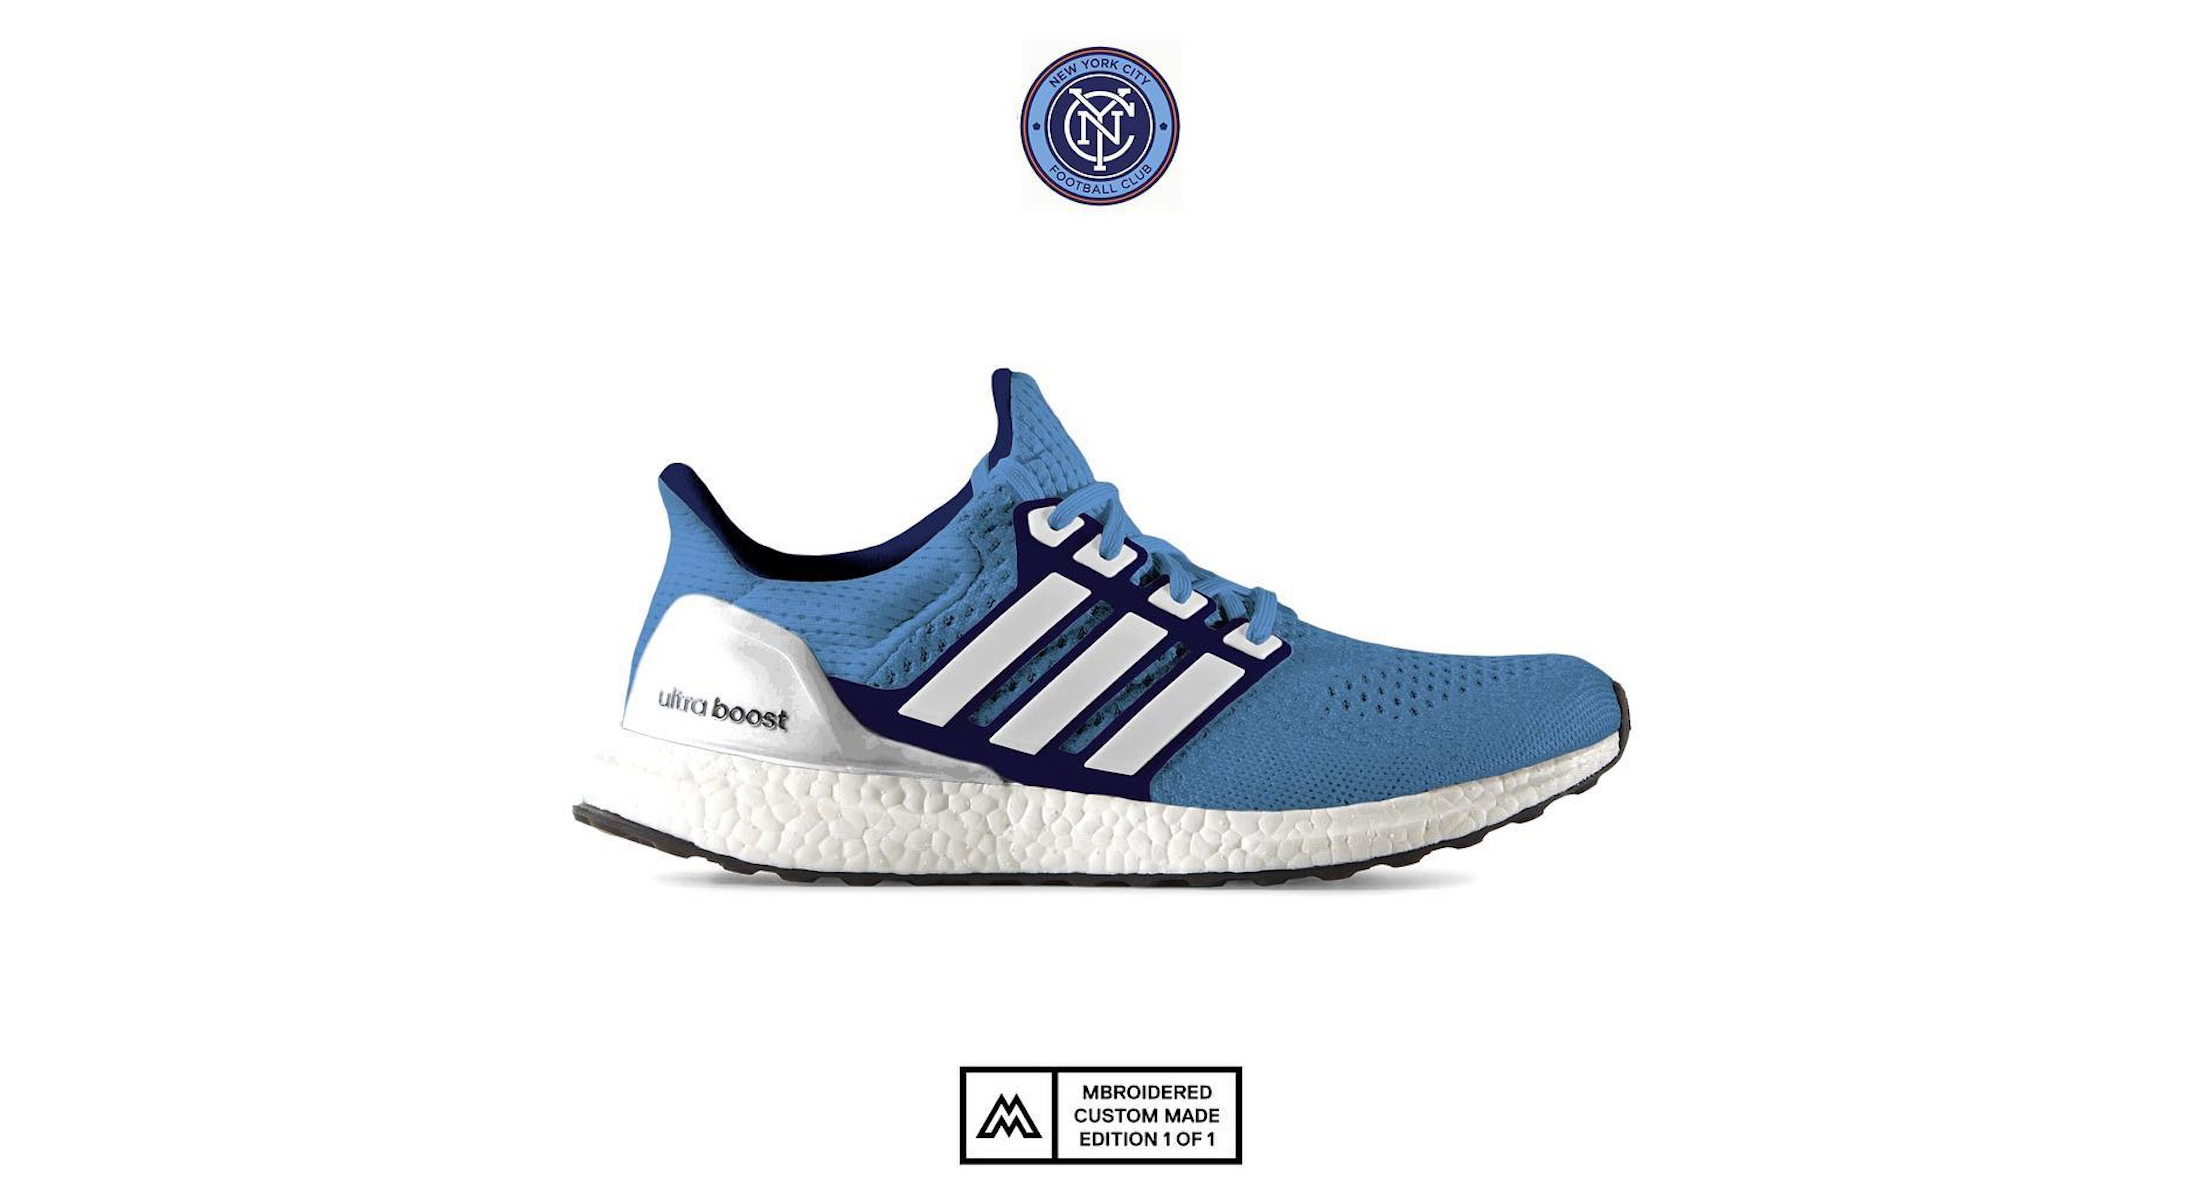 ultraboost-nycfc-mbroidered_jpeg